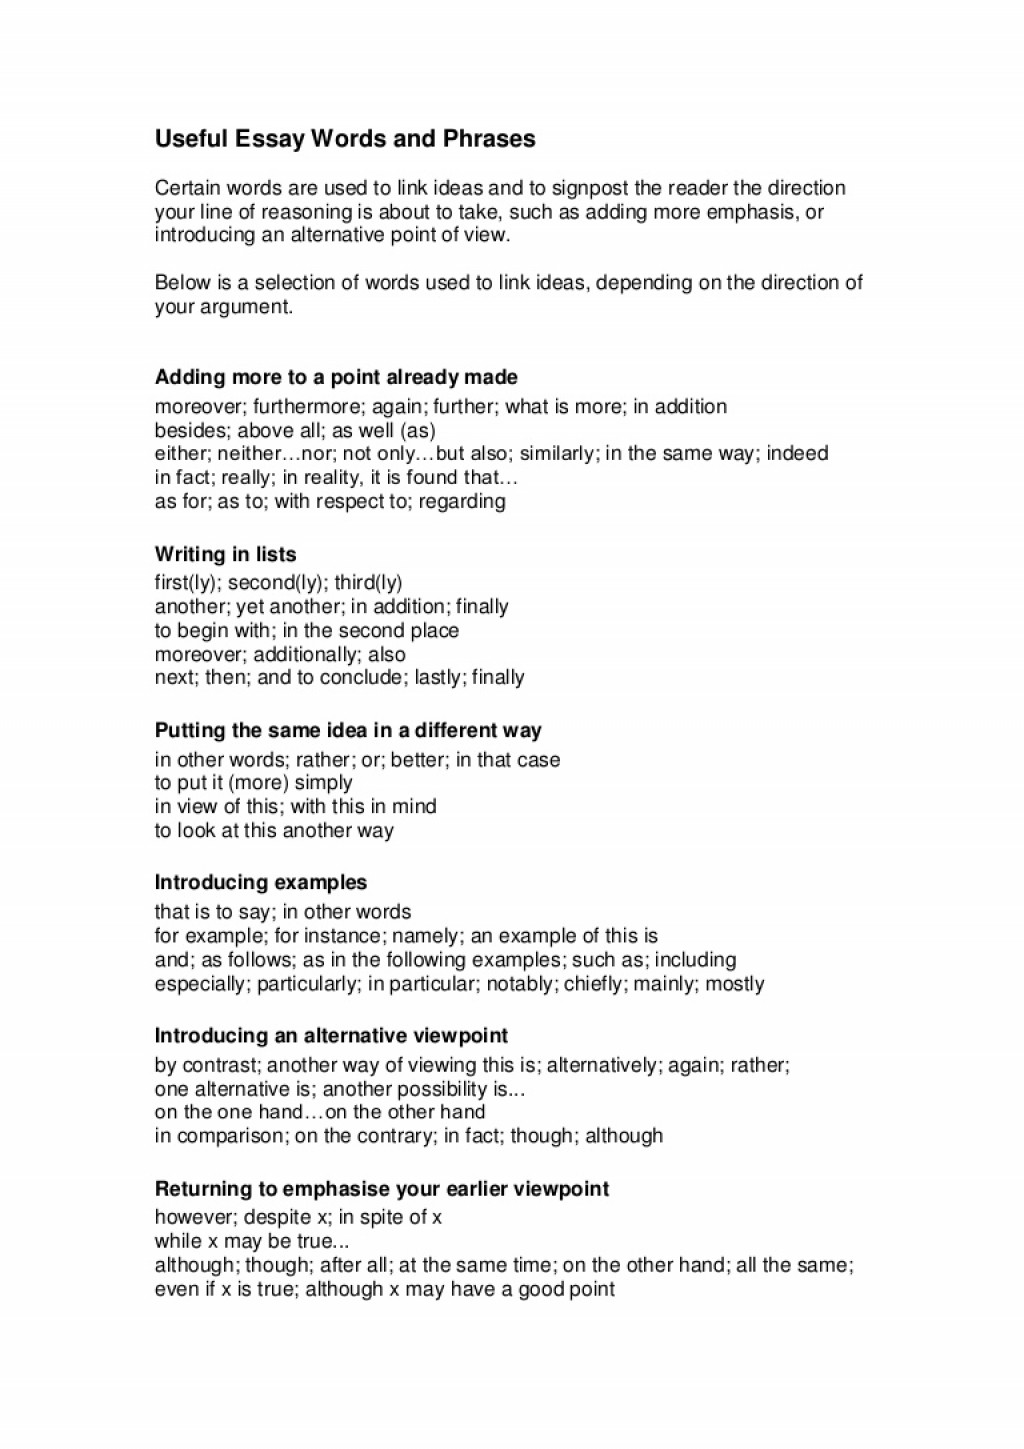 004 Writtenassignments2usefulessaywordsandphrases Phpapp02 Thumbnail Essay Example What Is The Main Purpose Of An Stirring Argumentative Structure Outline For Large